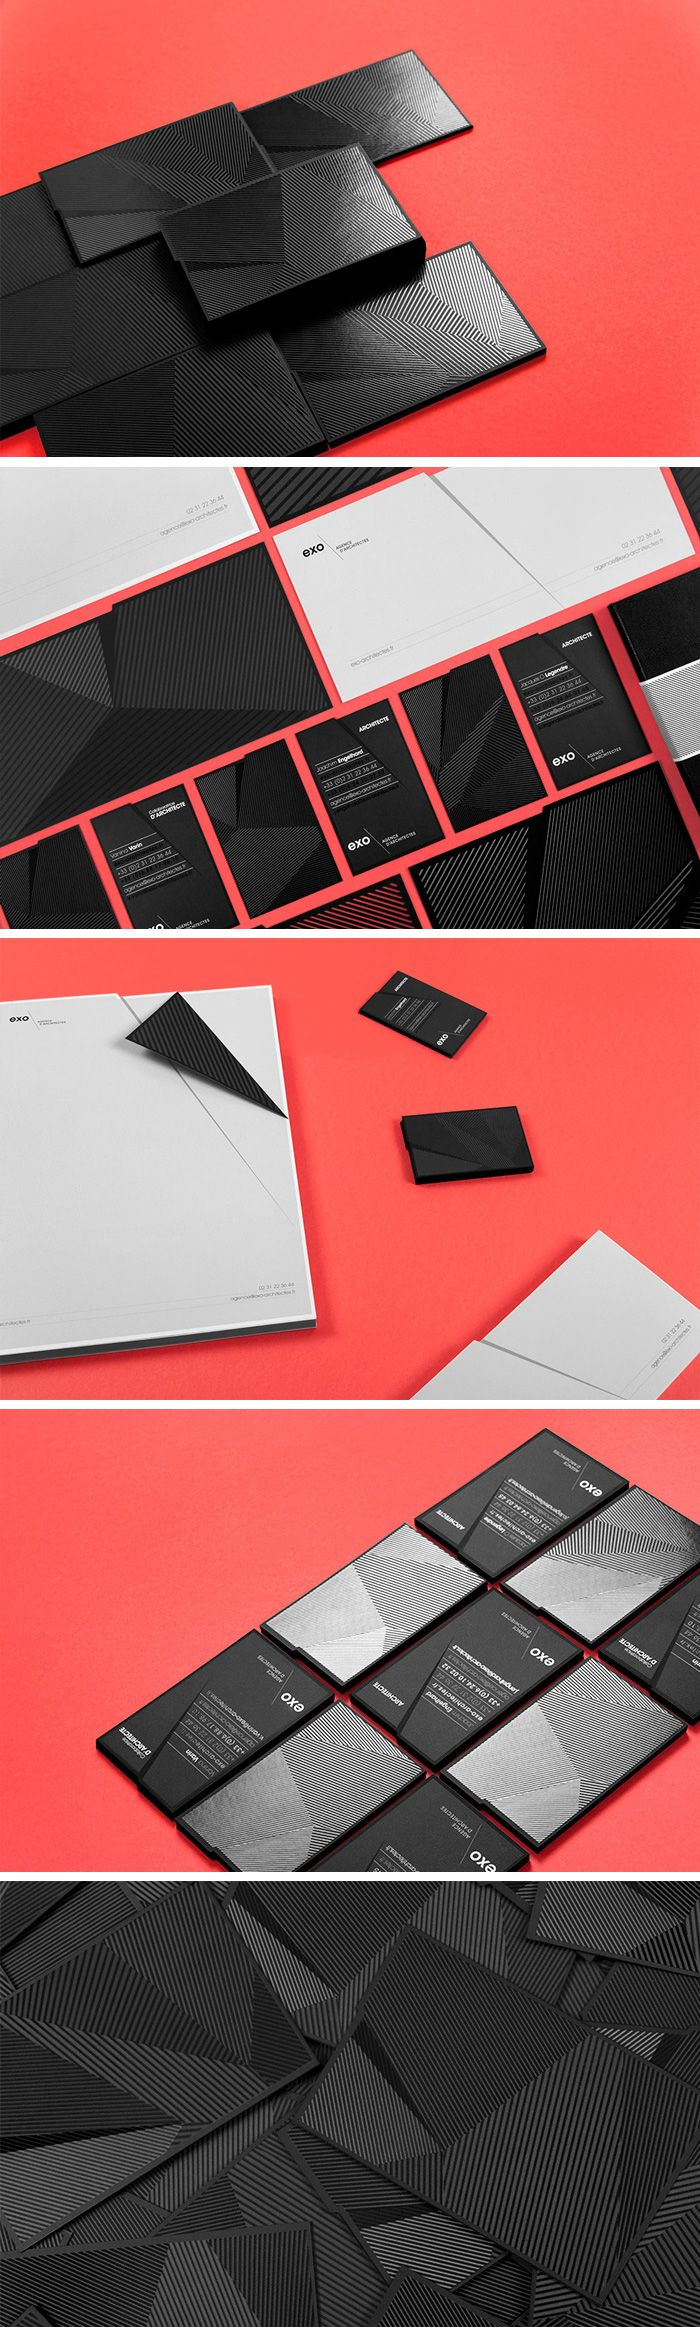 120 Best Identity Business Card Branding Design Images On